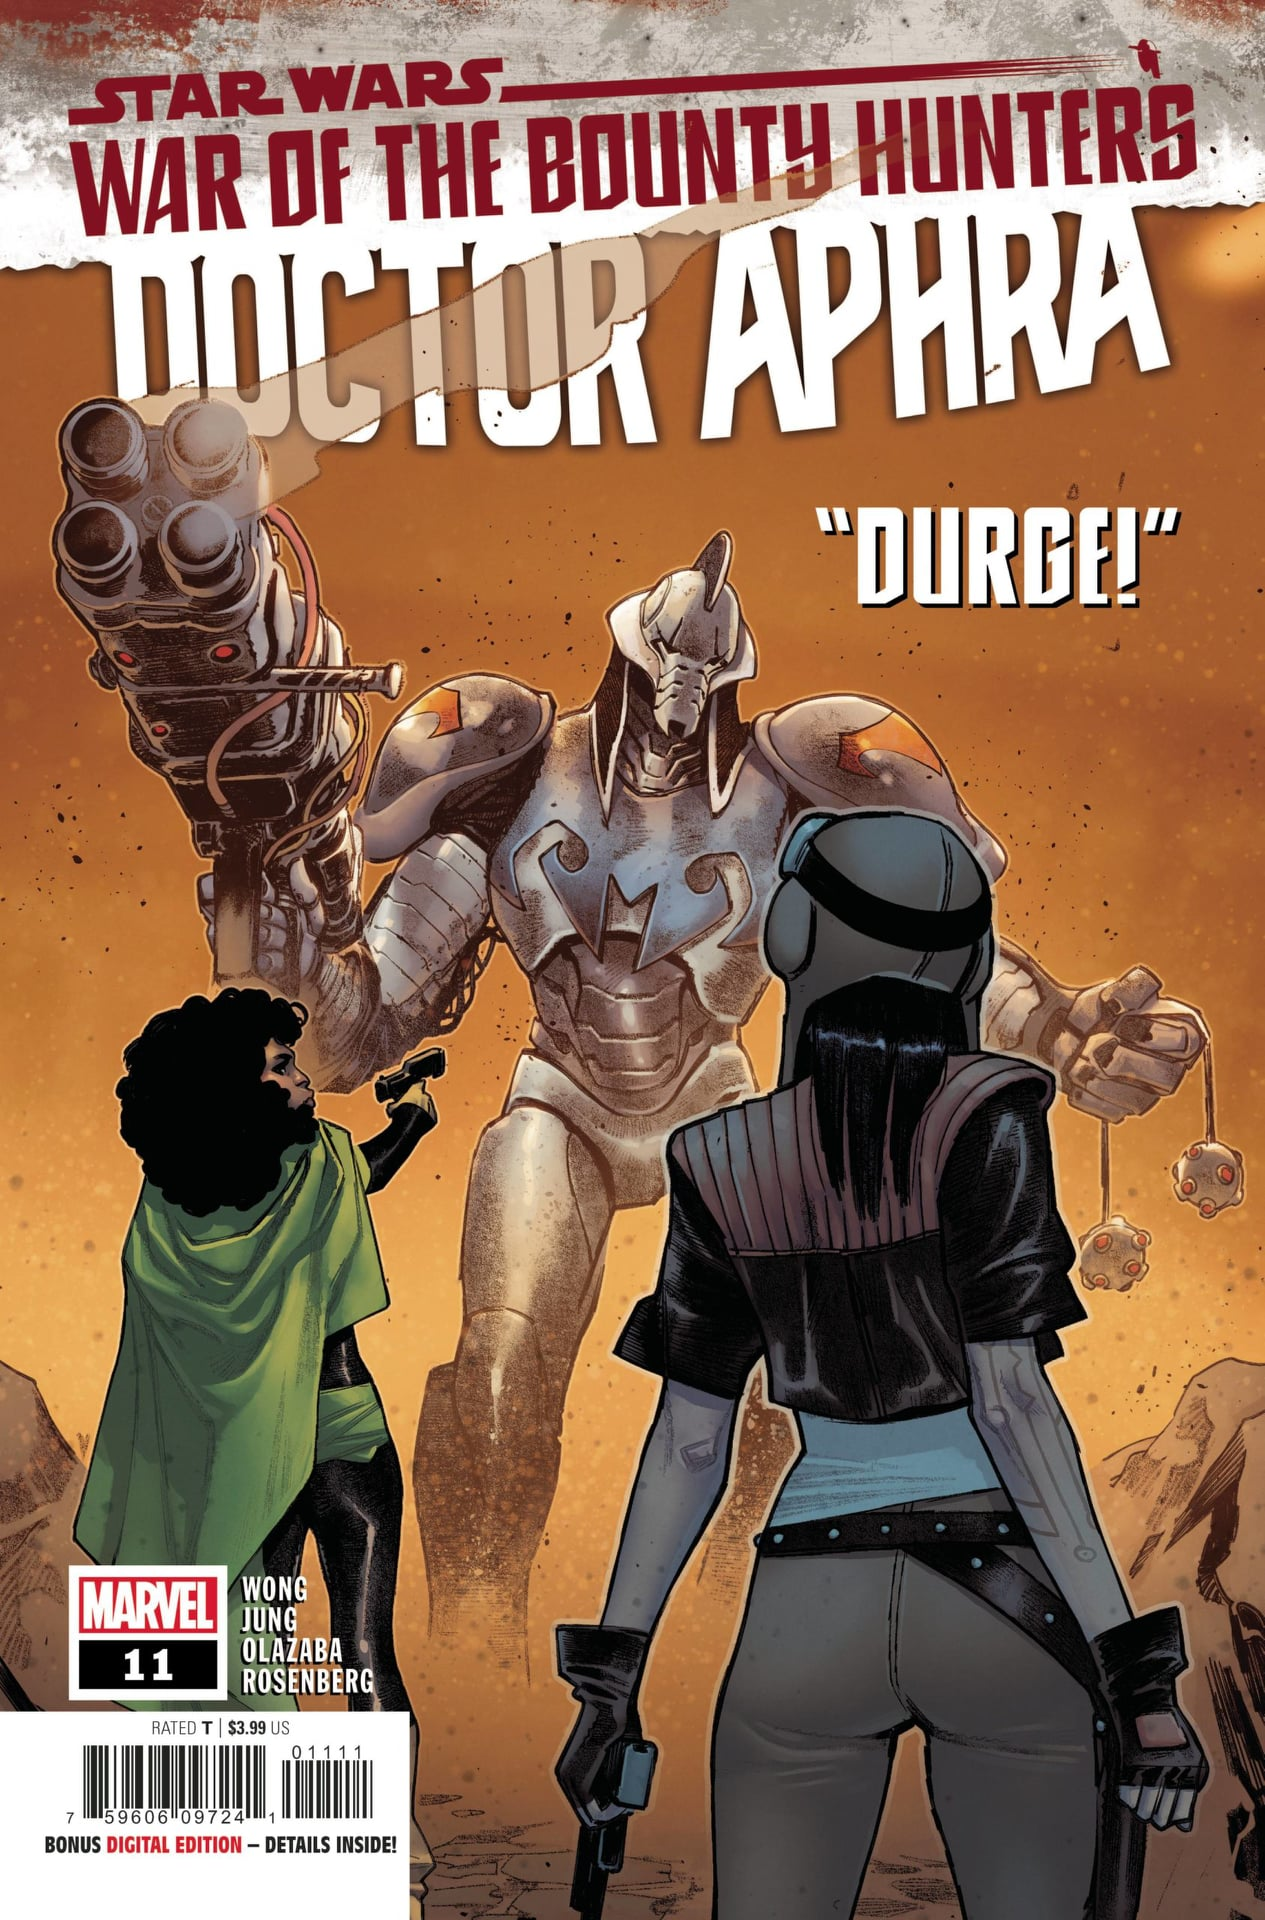 Star Wars Doctor Aphra: War of the Bounty Hunters